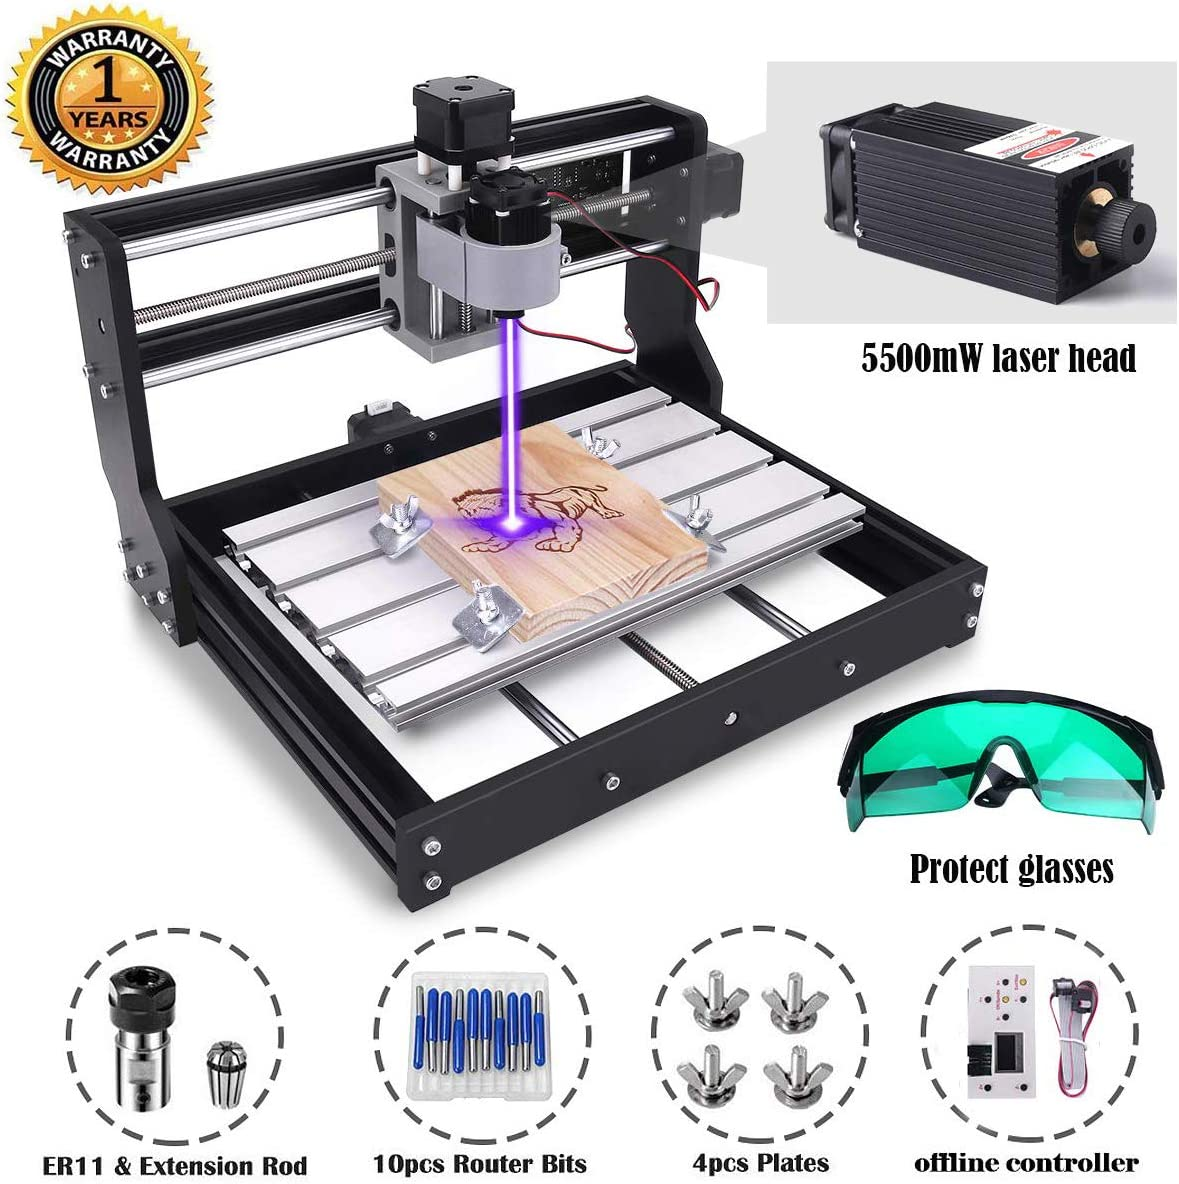 MYSWEETY 2-in-1 DIY CNC 3018-PRO 3 Axis CNC Router Kit with 5500mW 5.5W Module + PCB Milling, Wood Carving Engraving Machine with Offline Control Board + ER11 and 5mm Extension Rod